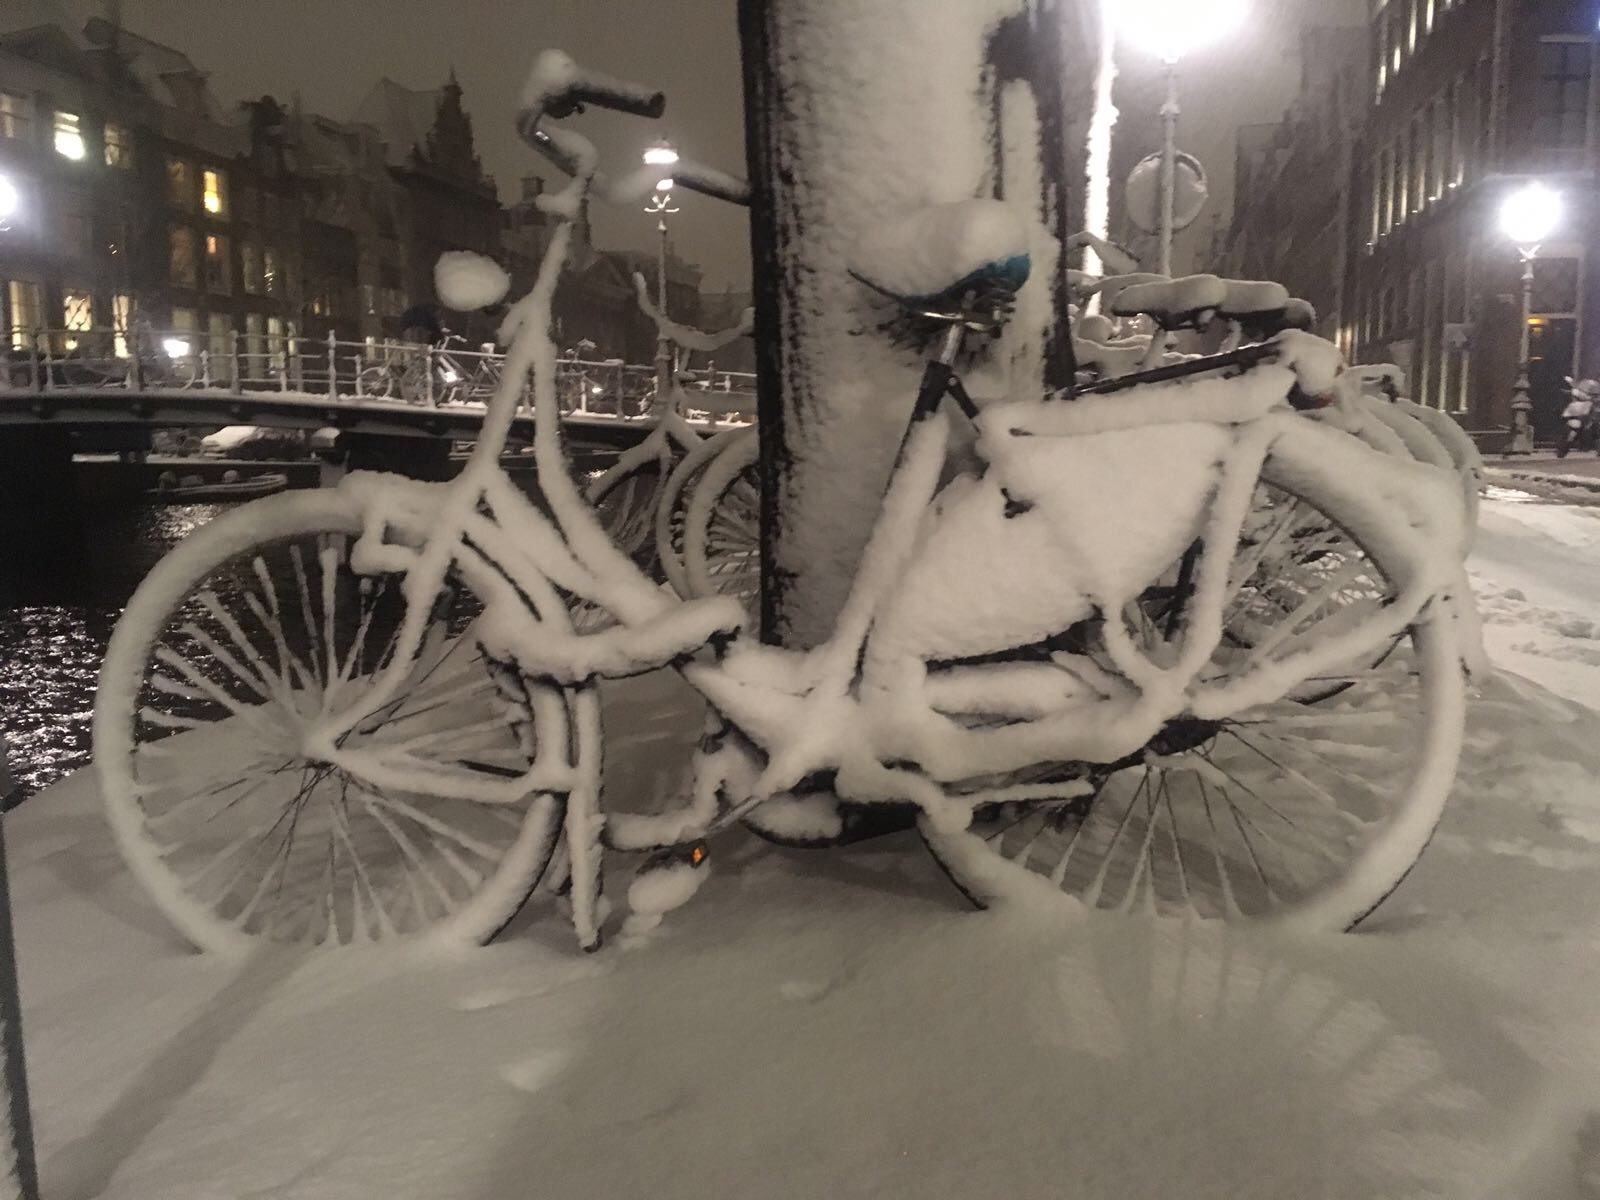 Frozen bike in Amsterdam